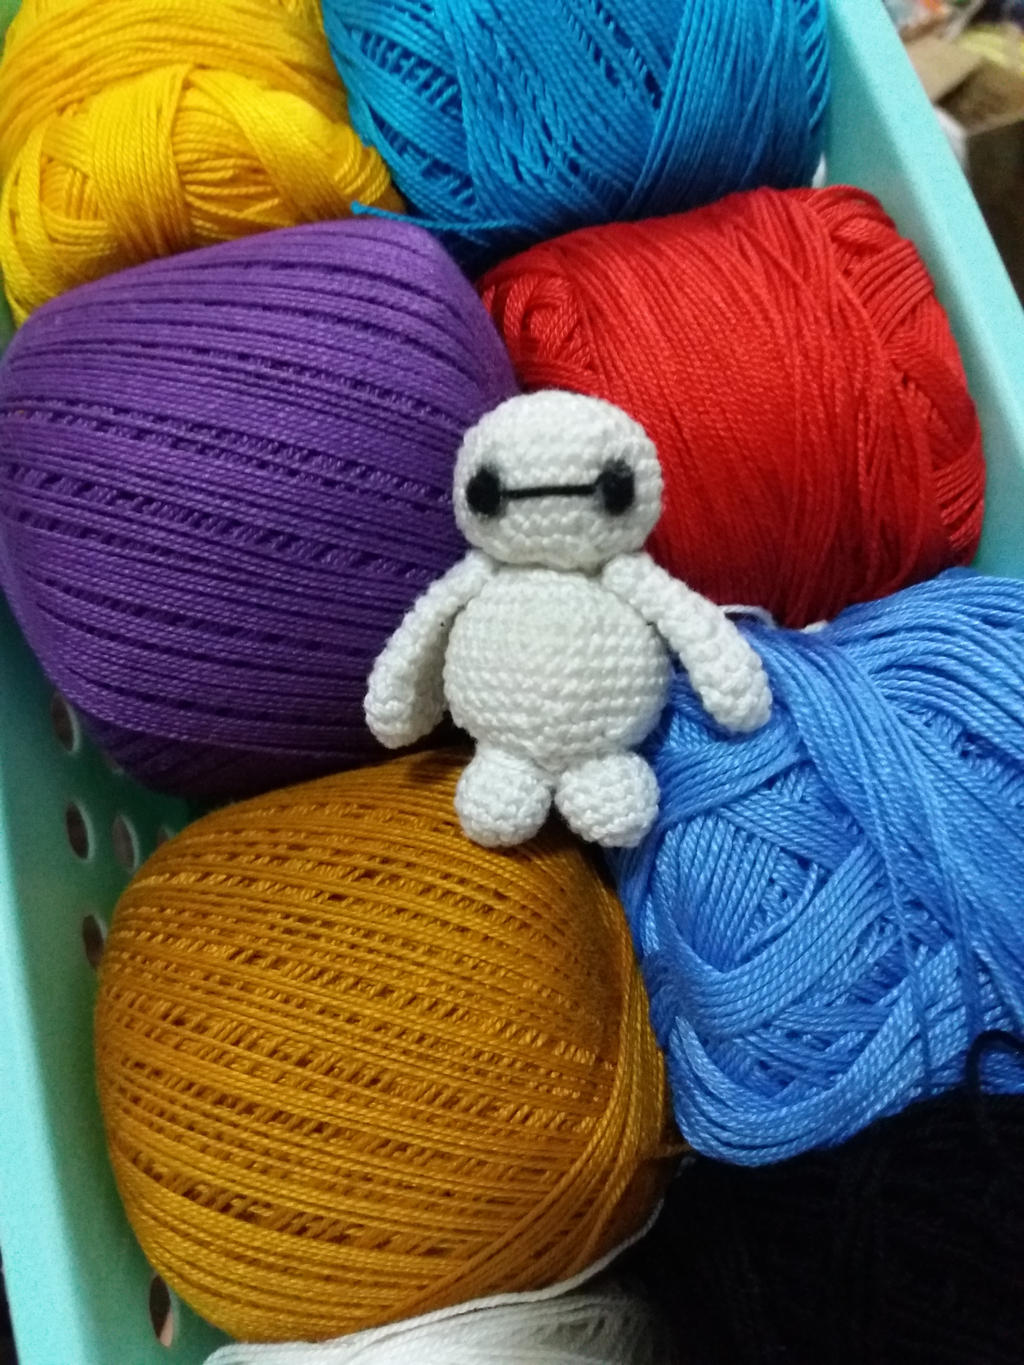 Amigurumi Crochet Baymax by Ysa-chi on DeviantArt